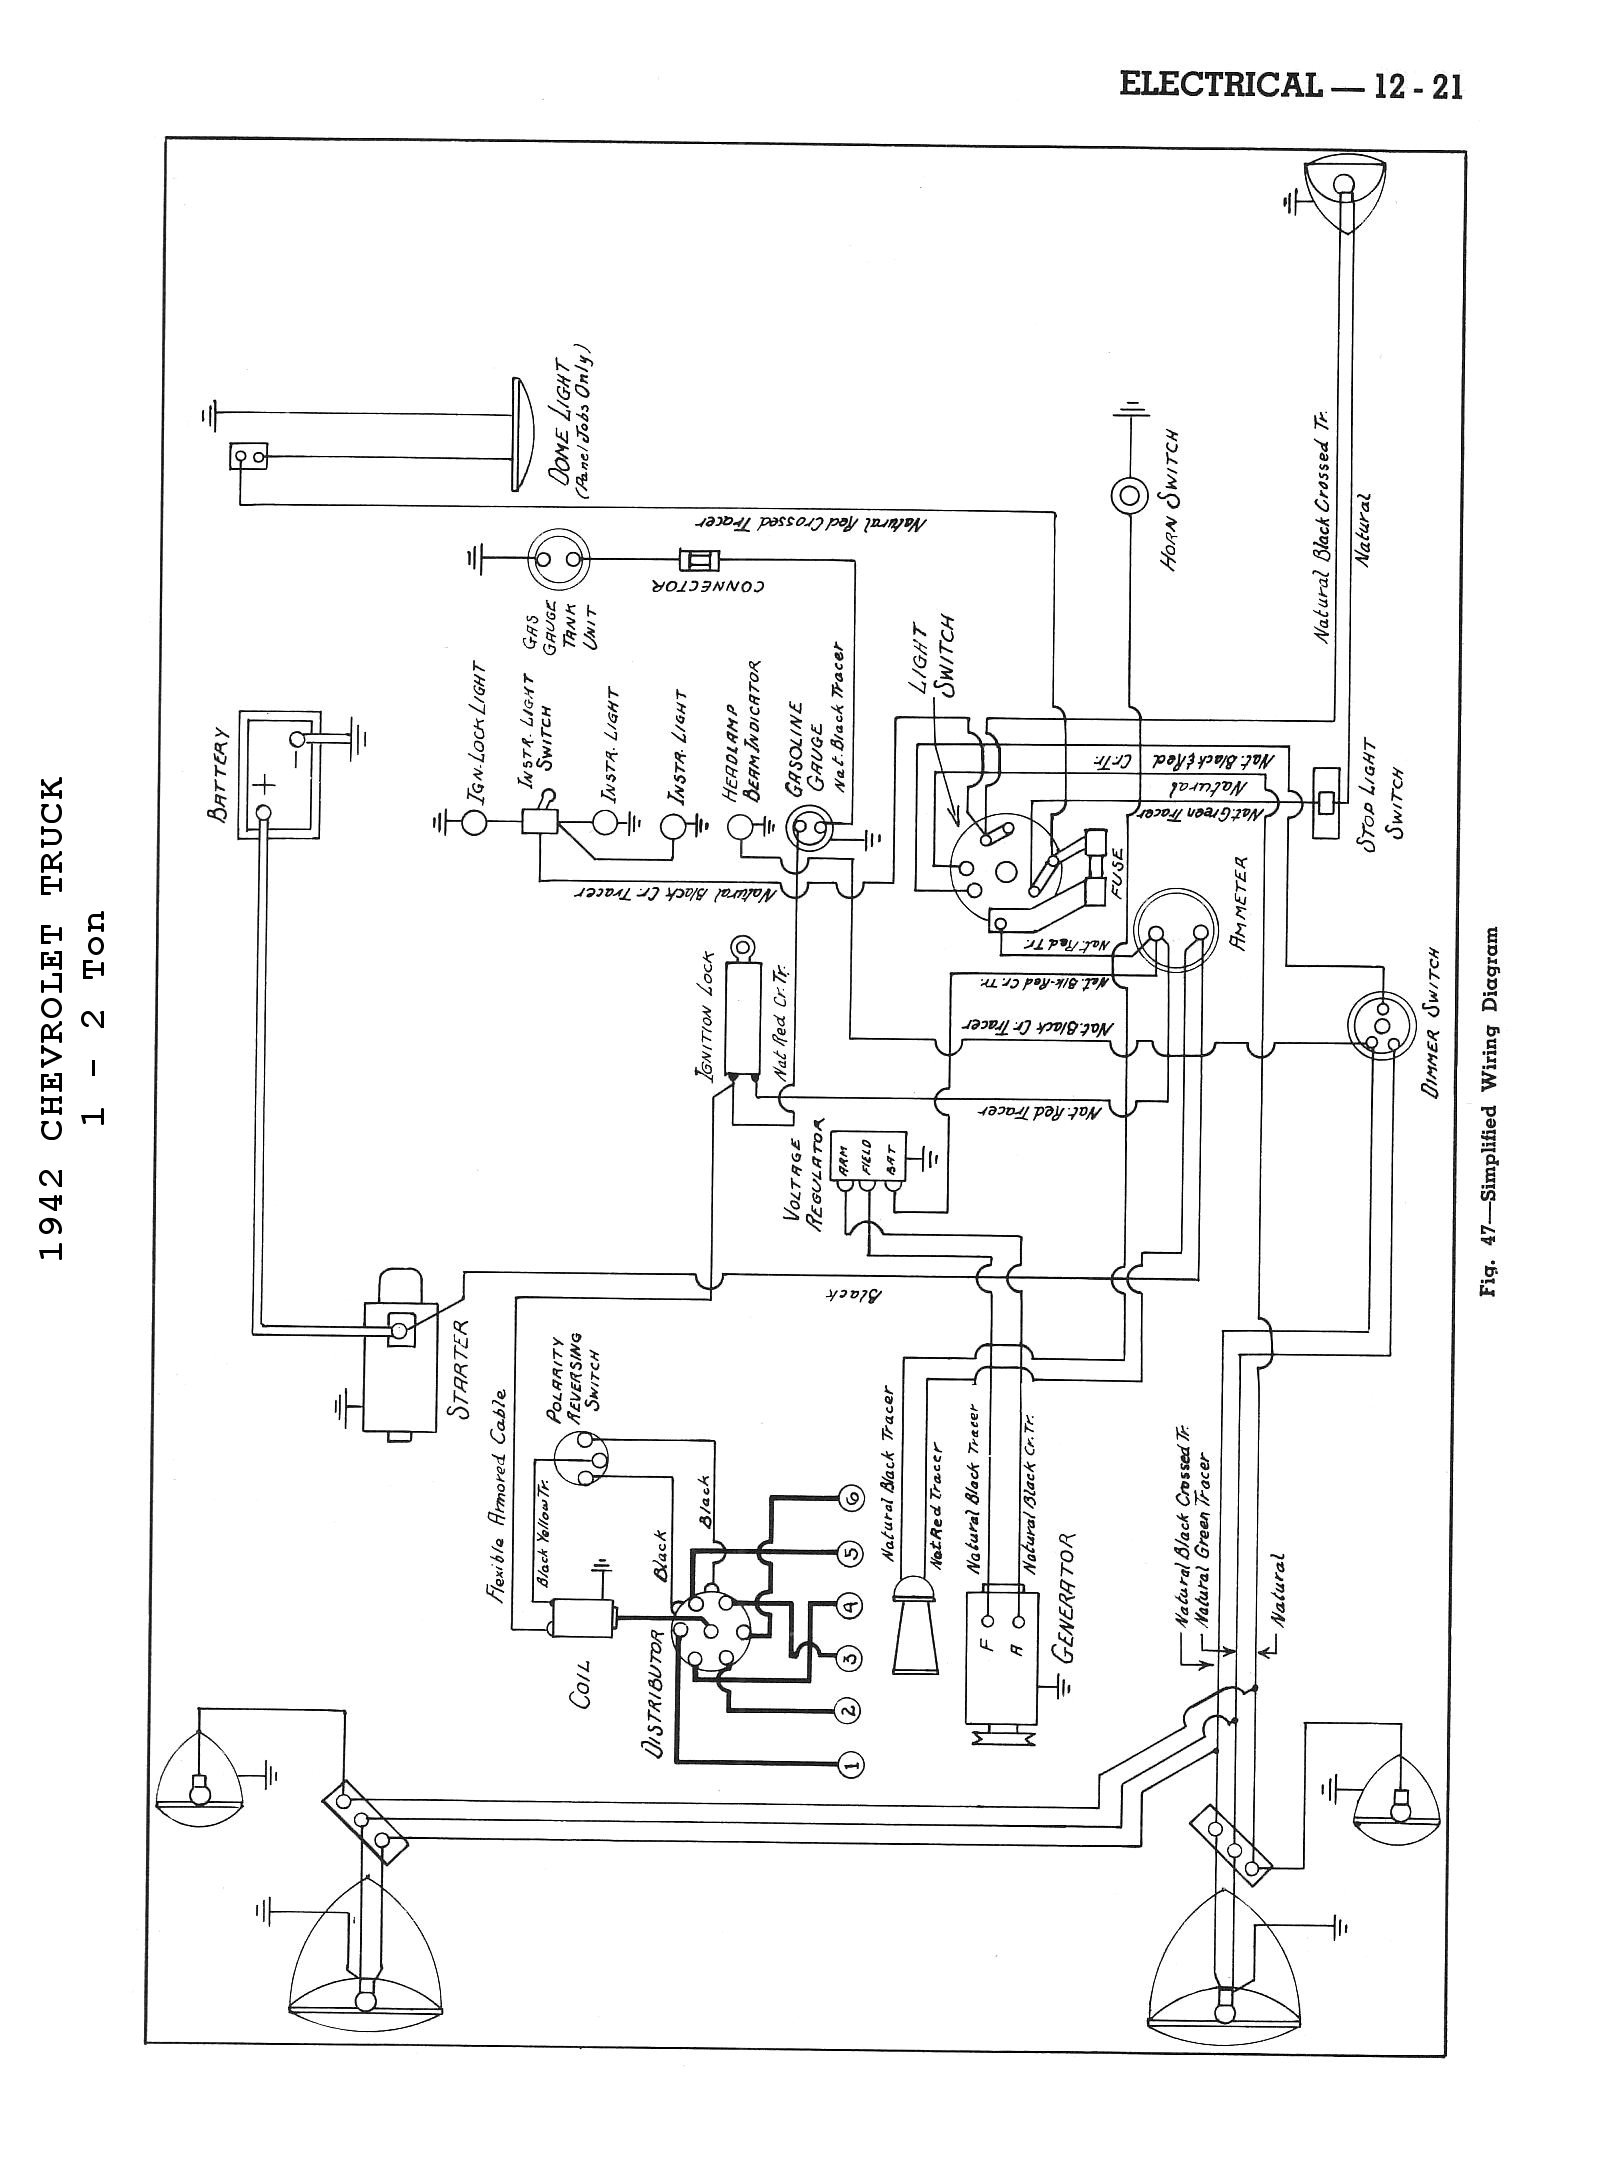 42cm4x2t1221 chevy wiring diagrams studebaker wiring harness at eliteediting.co